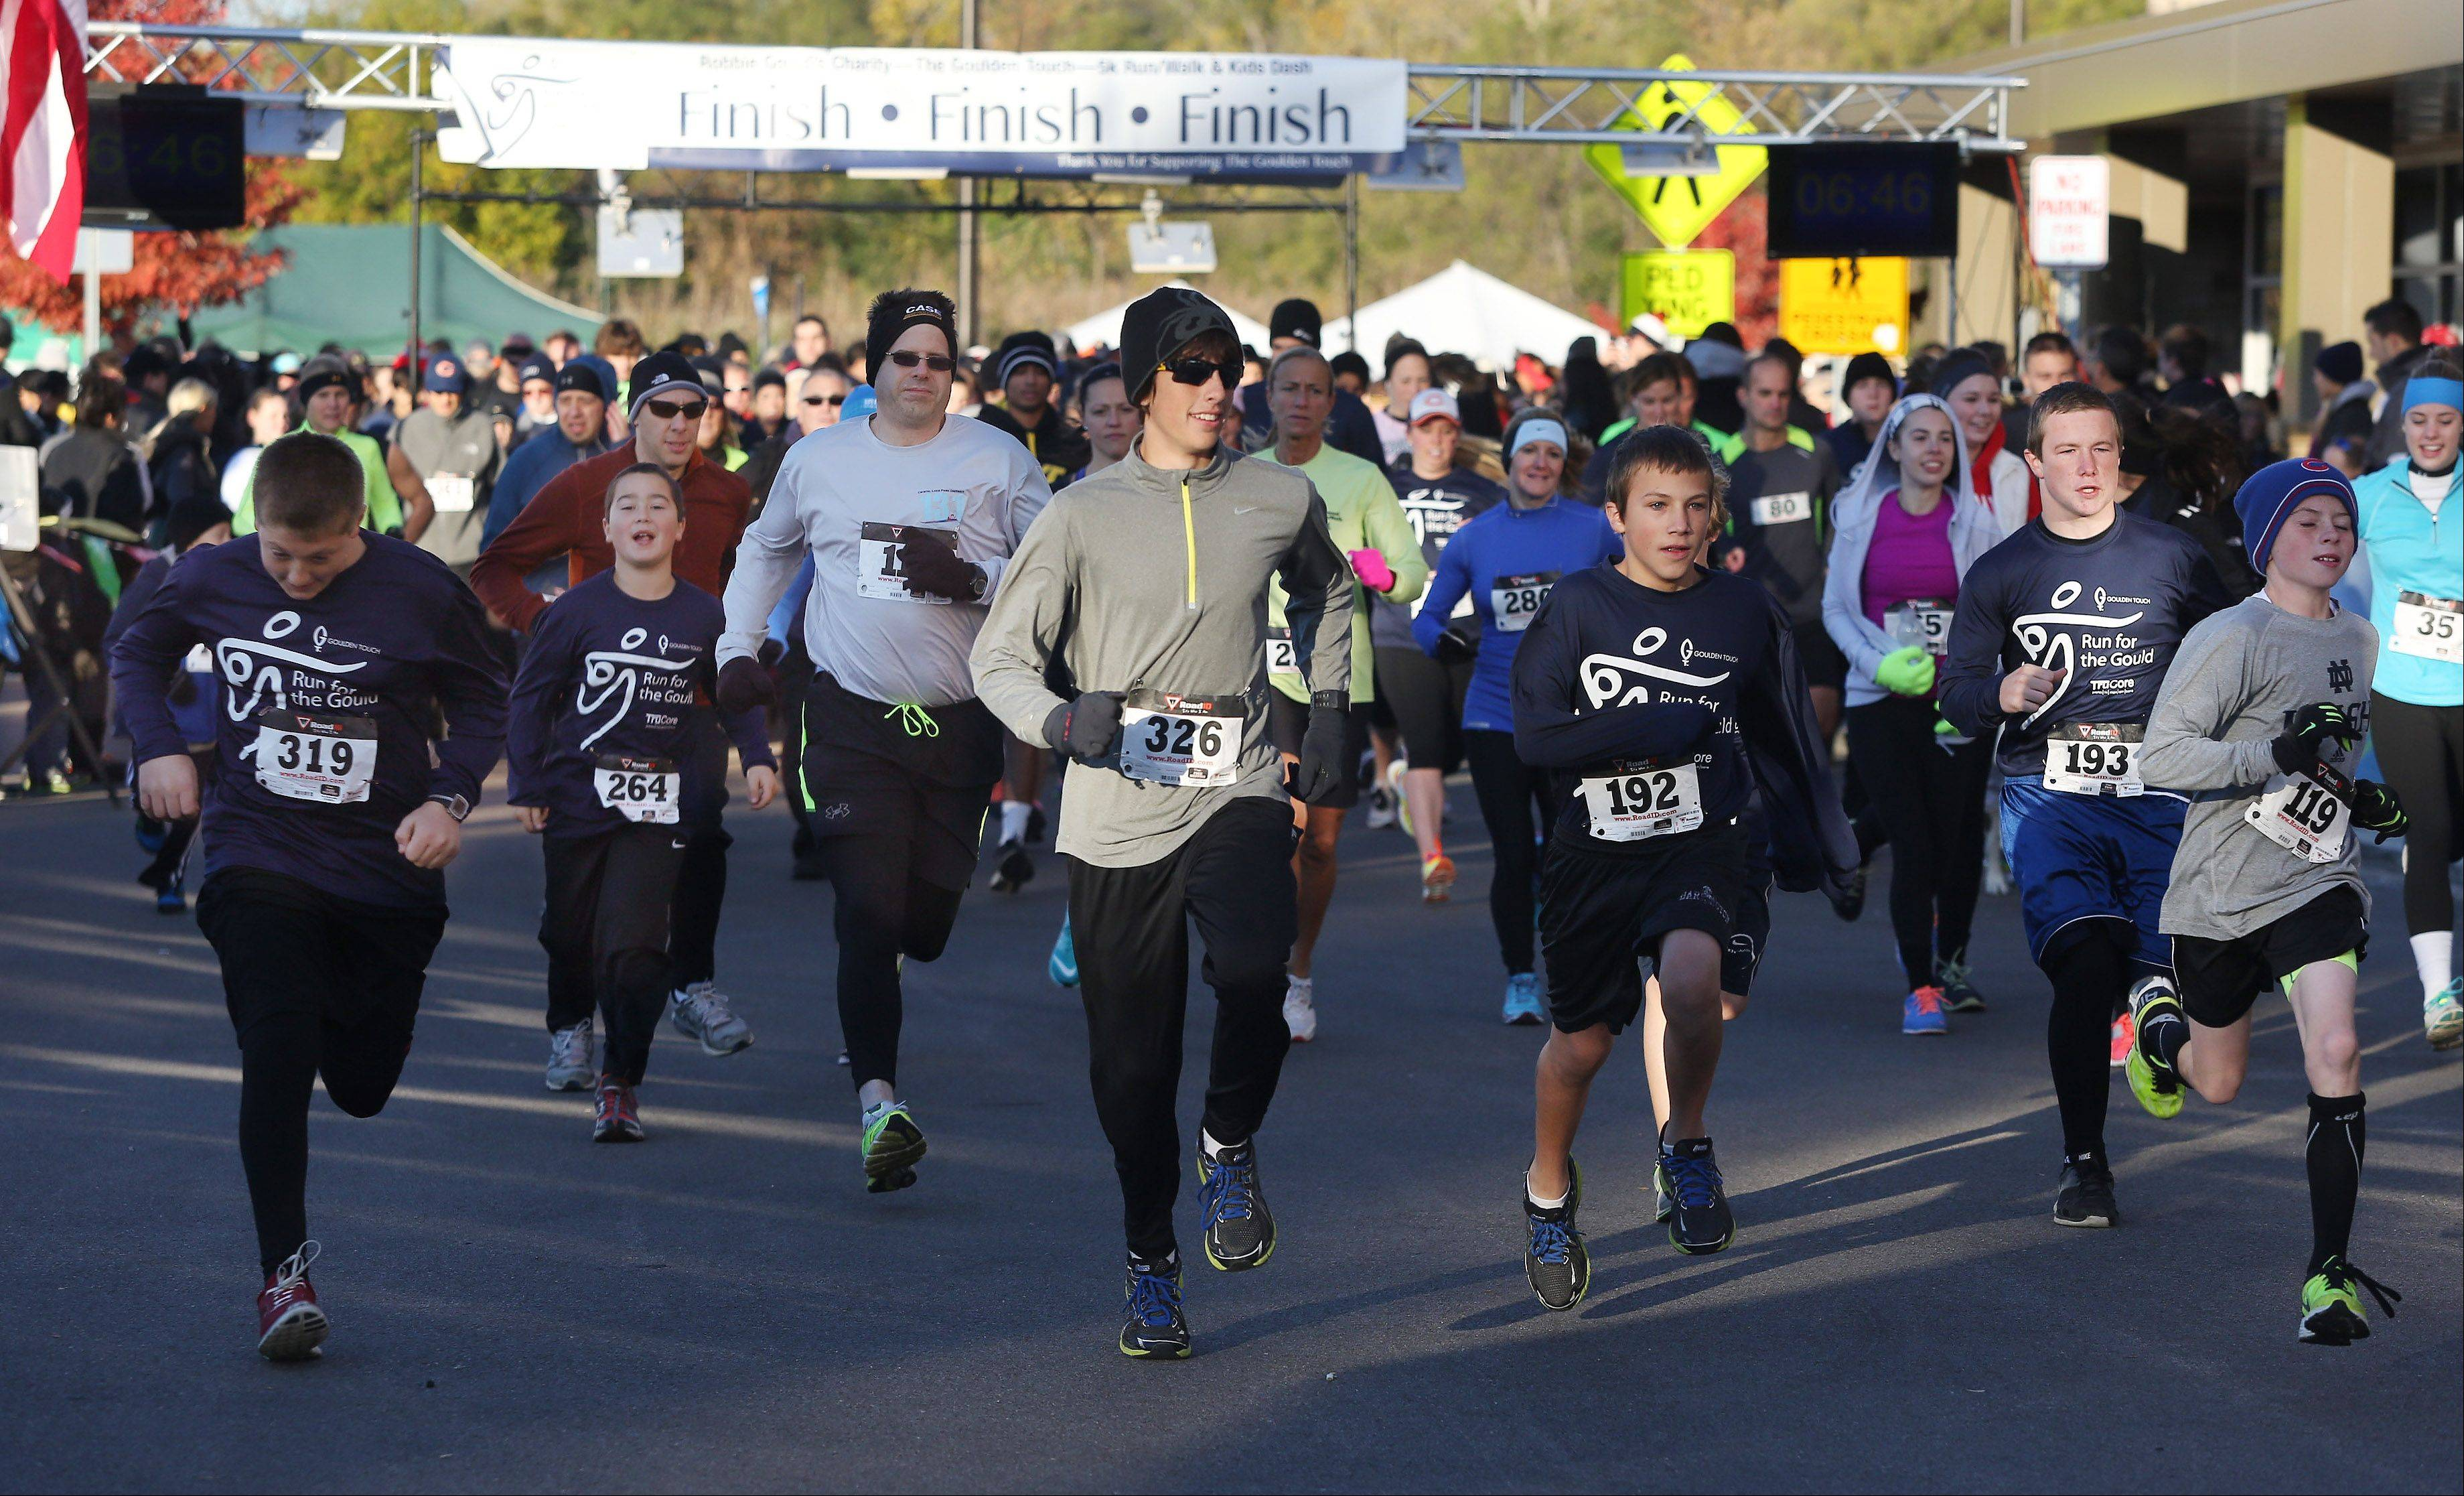 Runners start the Run for the Gould 5K and Kids Dash in Kildeer. Chicago Bears kicker Robbie Gould and TruCore Pilates sponsored the run to benefit the Goulden Touch charity, which donates money to food banks, cancer research and other causes.